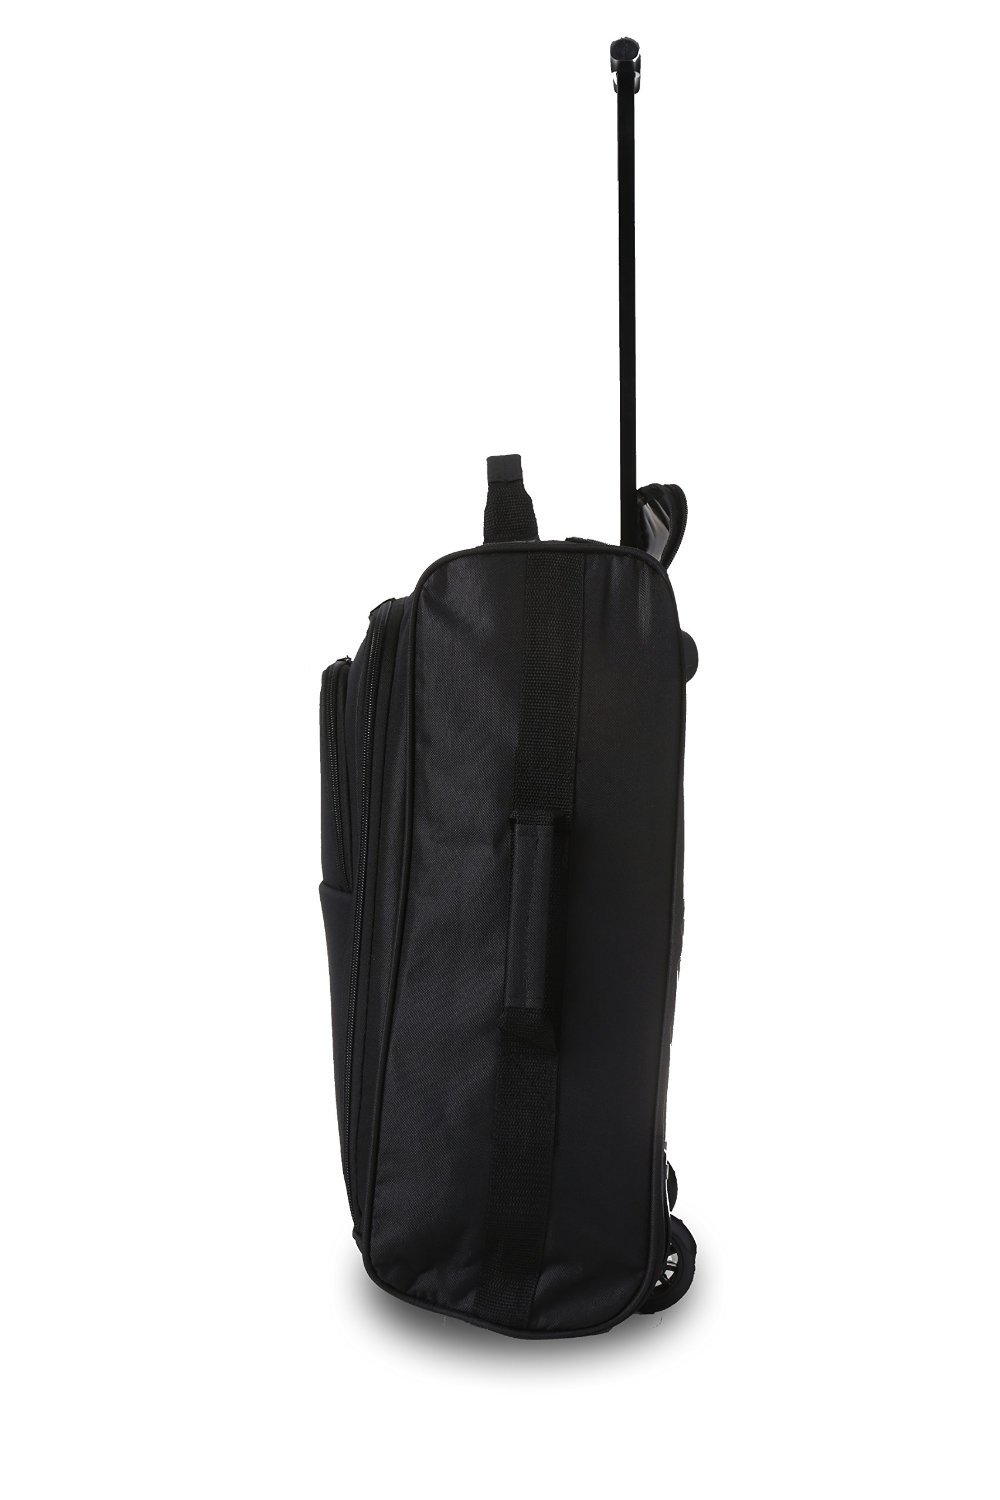 5 Cities The Valencia Collection Equipaje de cabina TB023-830, 55 cm, 42 L, Negro por solo 19,99€